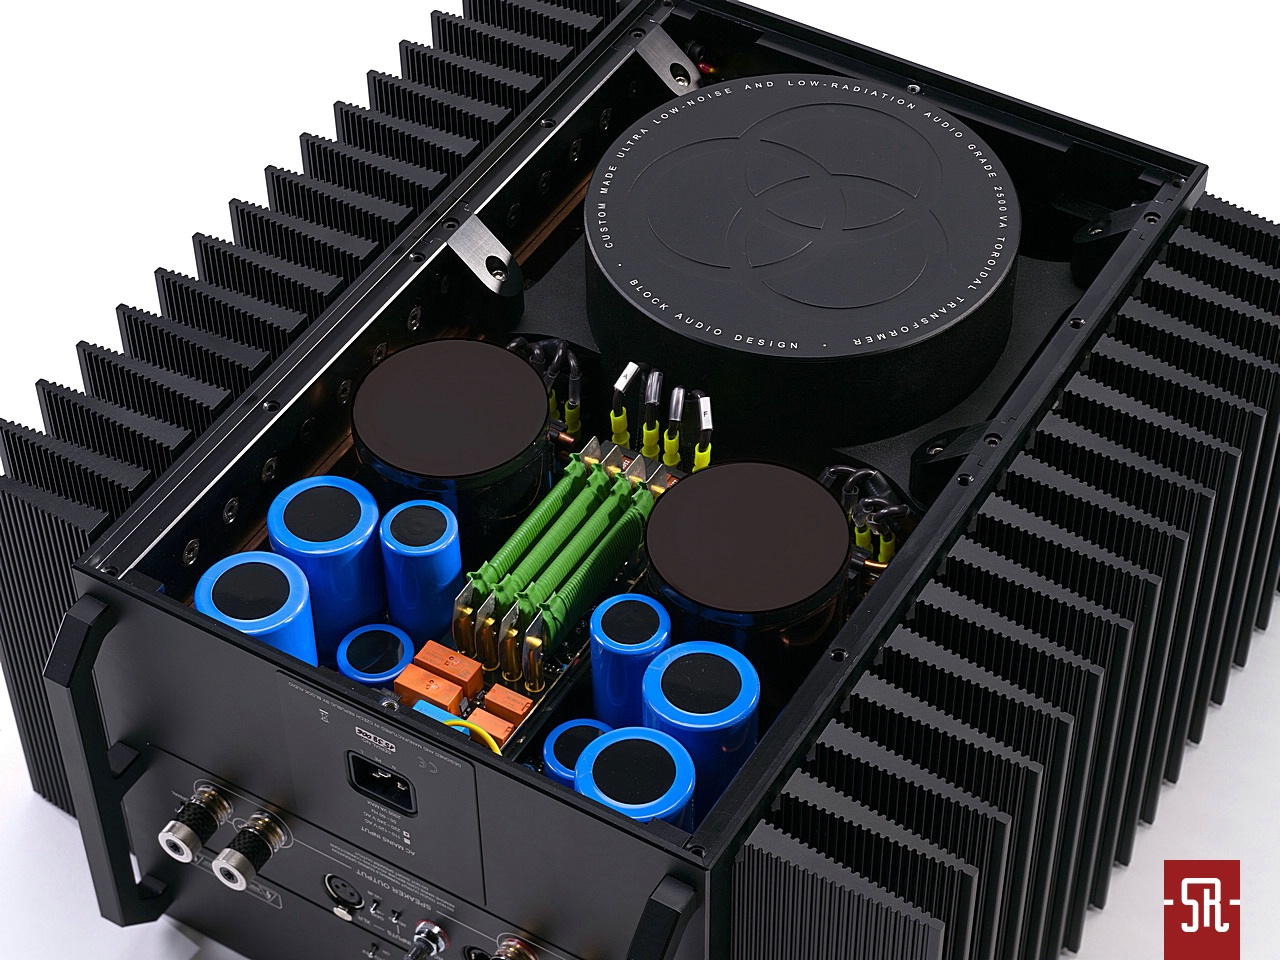 Block Audio Line Power Mono Blocks English Ver Soundrebels Class G H Amplifiers Do They Deliver On Their Promise Of High Despite Mr Michal Sevcik From Claiming That The Tested Devices Came To Life Mainly Audiophile Passion And Need Wish